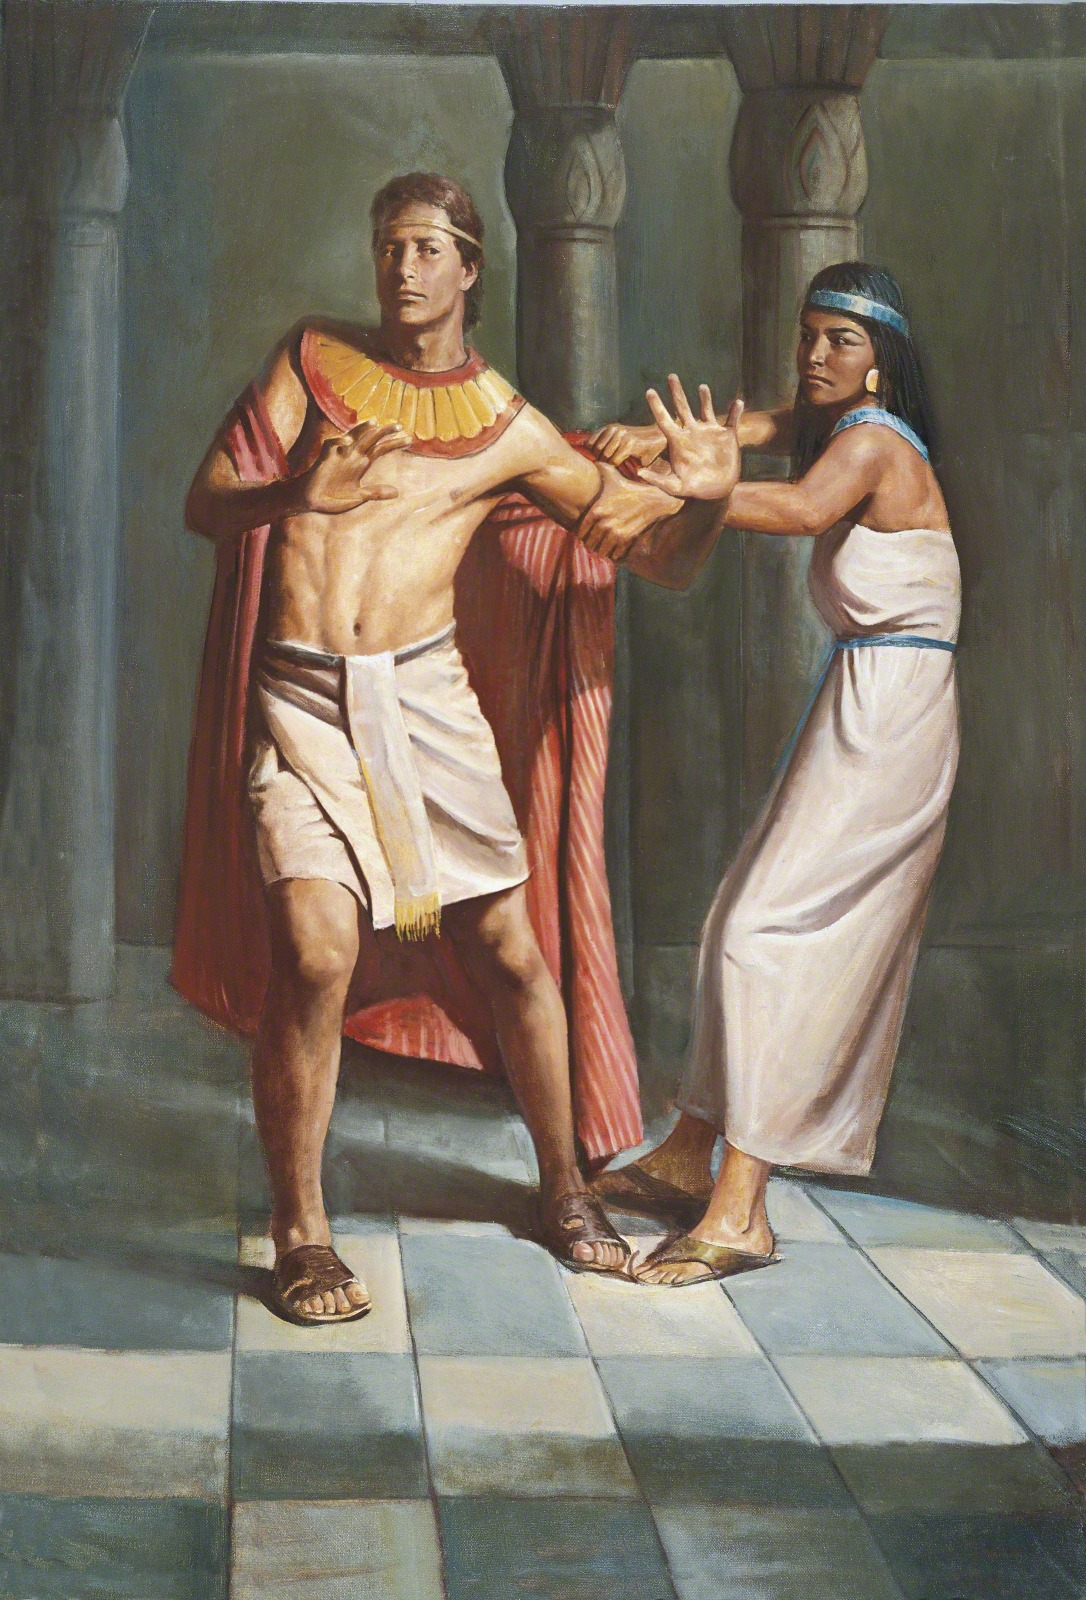 an analysis of the story of joseph and potiphars wife Potiphar and his wife the story of potiphar and his wife is prior to having him jailed for allegedly assaulting his wife, potiphar takes notice of joseph's.